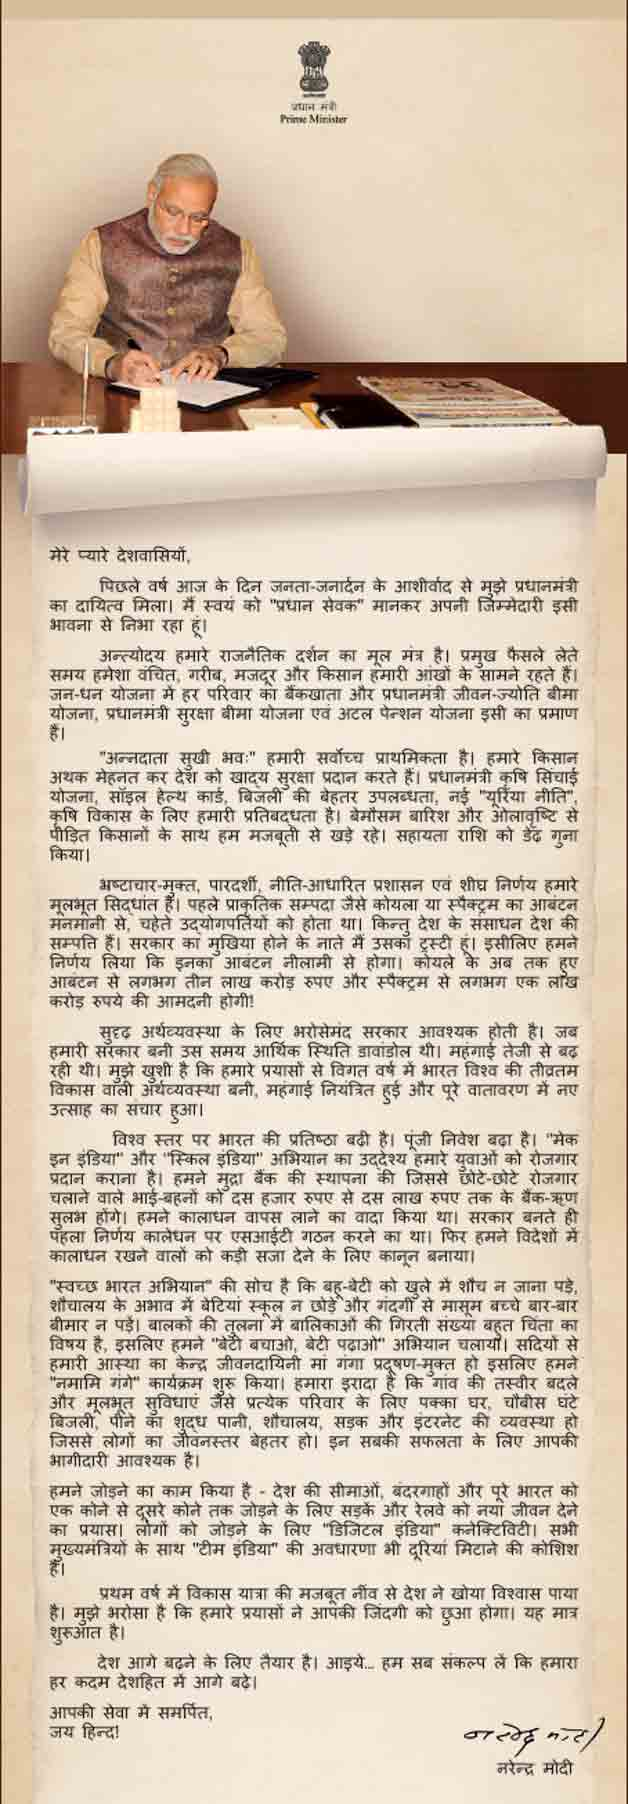 Narendra Modi letter in Hindi